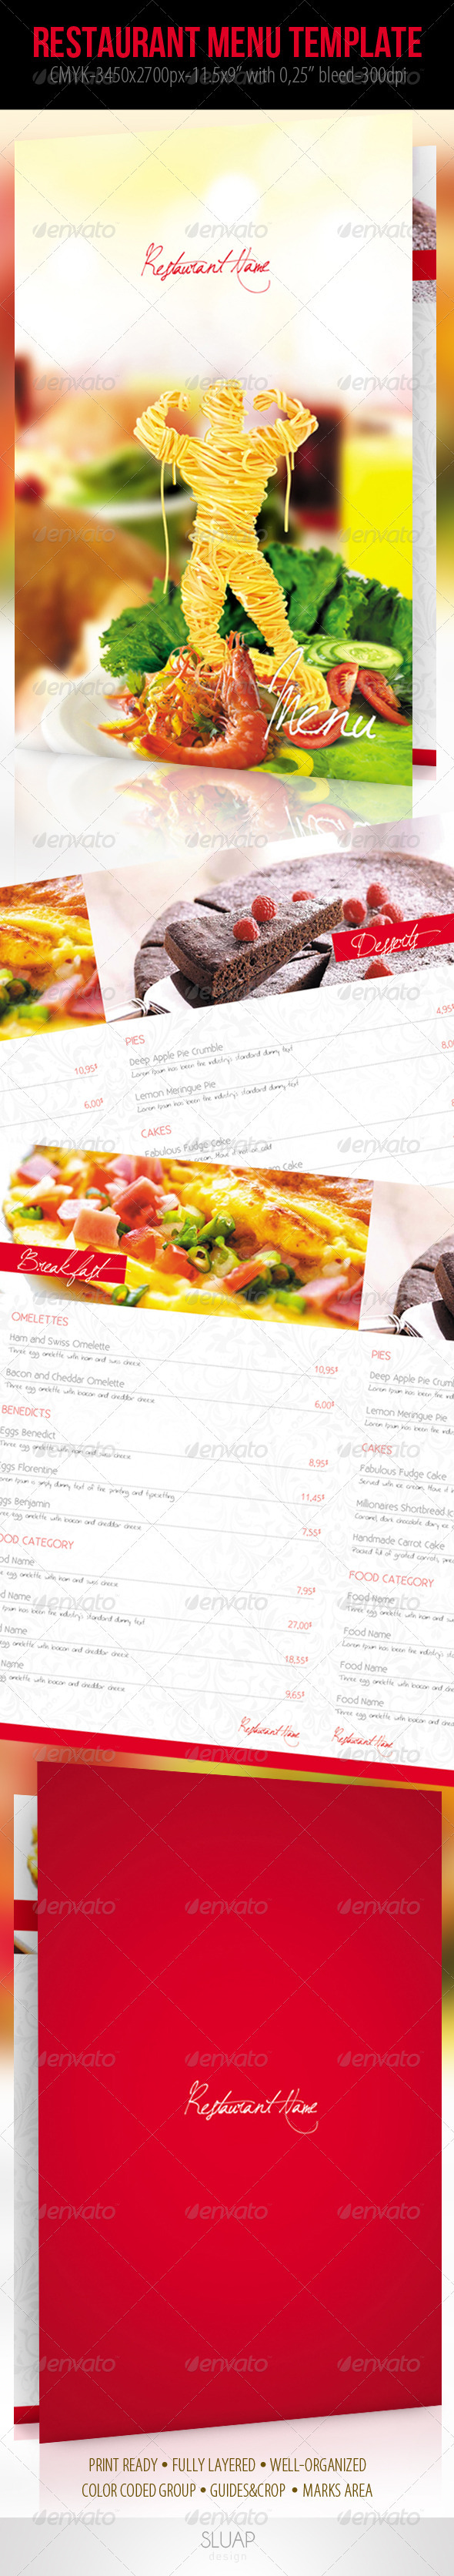 Restaurant Menu Template - Food Menus Print Templates